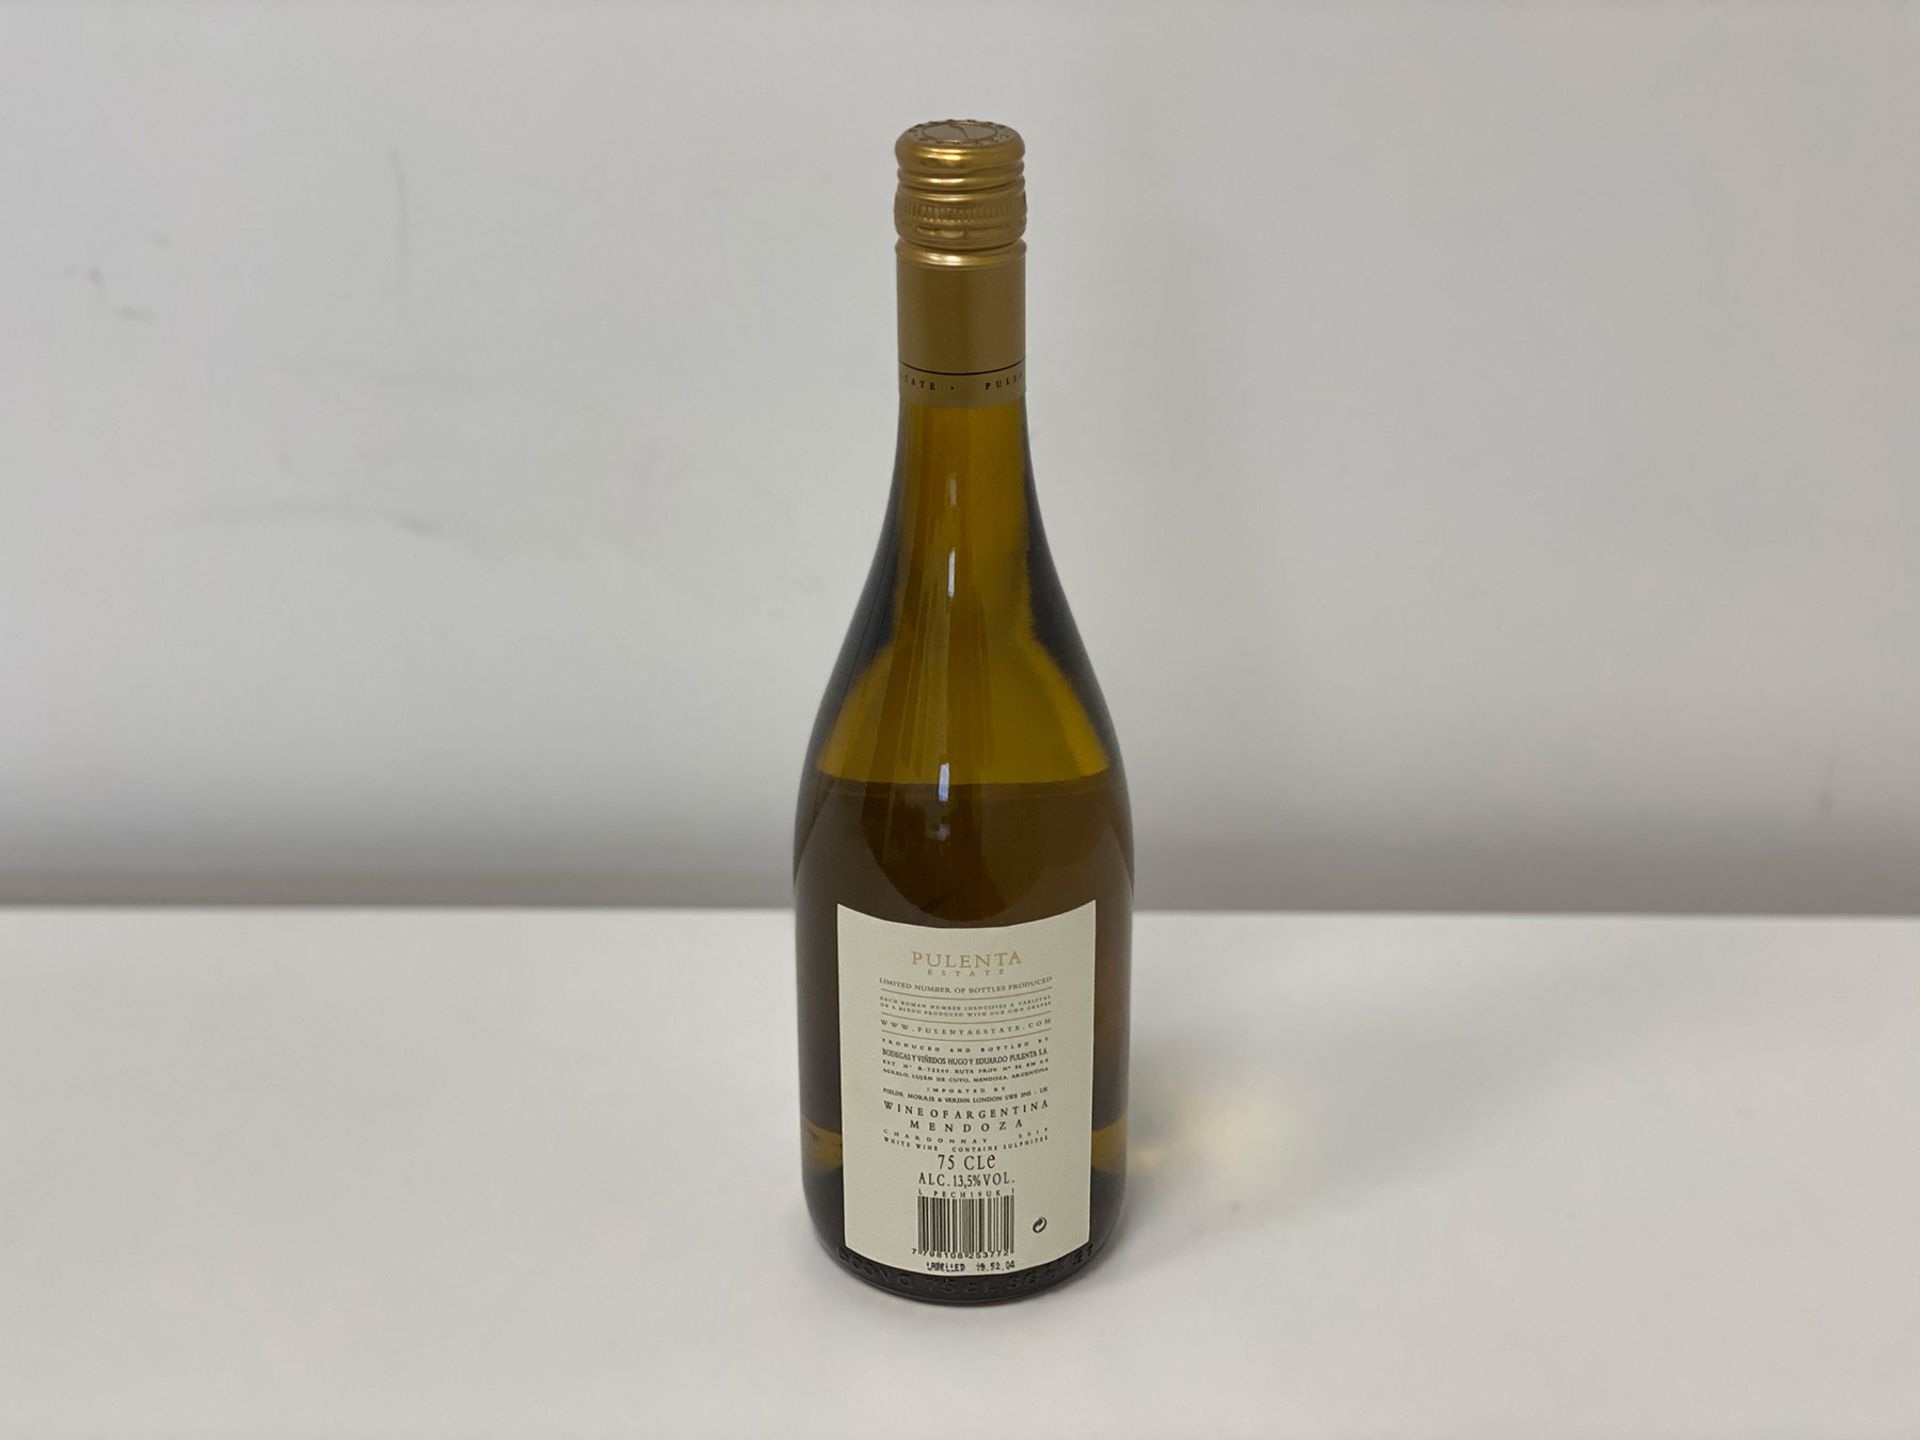 60 Bottles (10 Cases) 2019 Pulenta Estate - Pulenta Estate - Chardonnay - Mendoza - Image 2 of 2